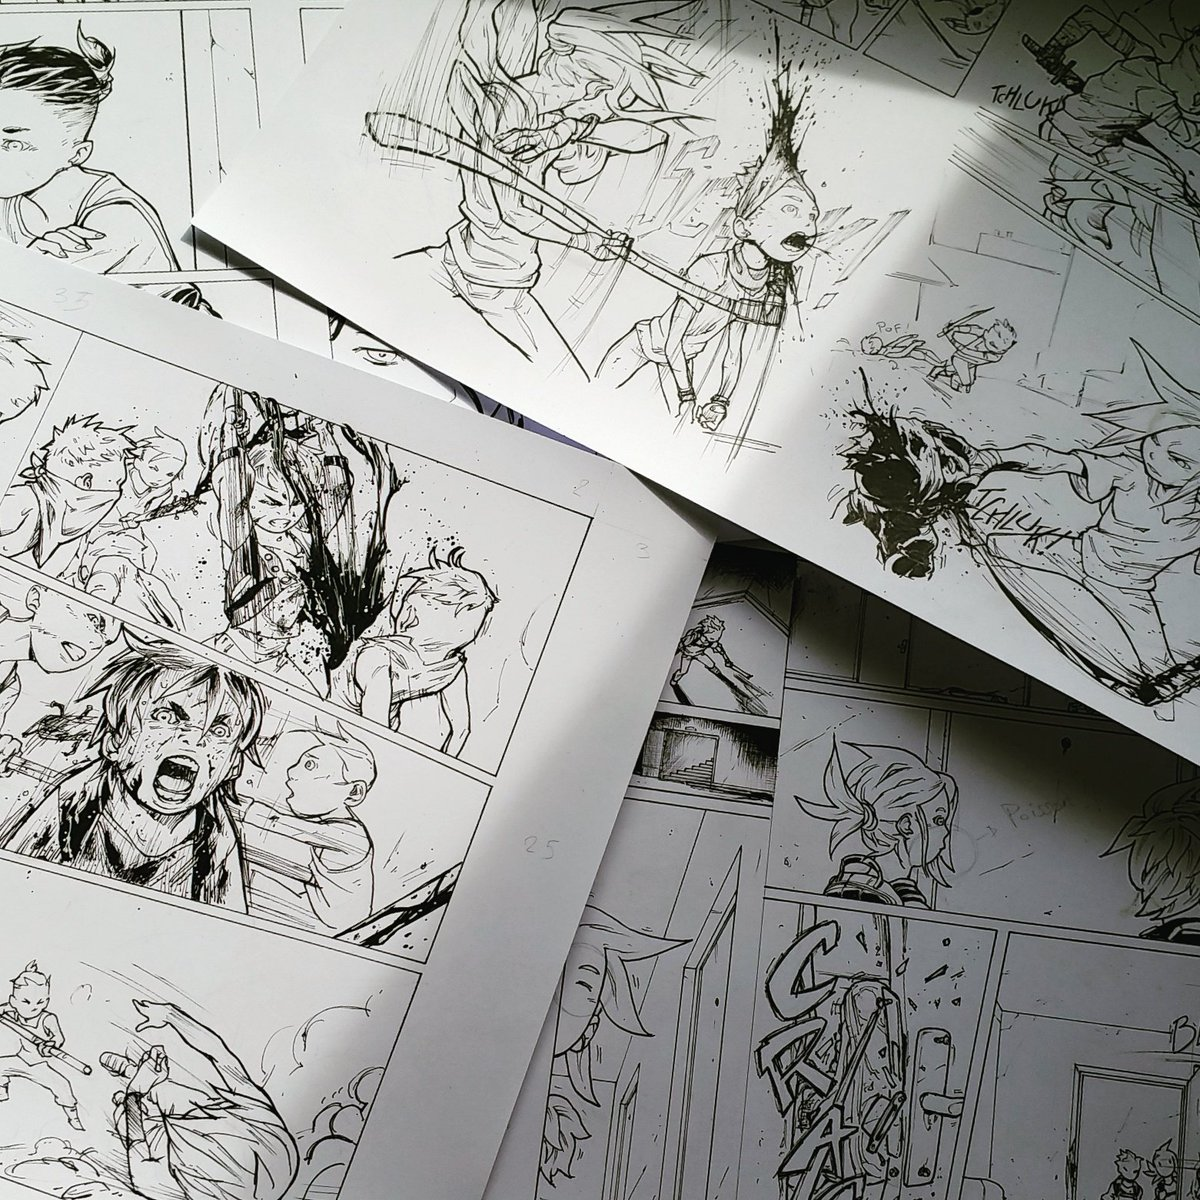 Before posting the new panel, I&#39;m looking back the old ones... #manga #comic #ink #inking #MondayMotivation #lyon <br>http://pic.twitter.com/ewBdoqIwrC